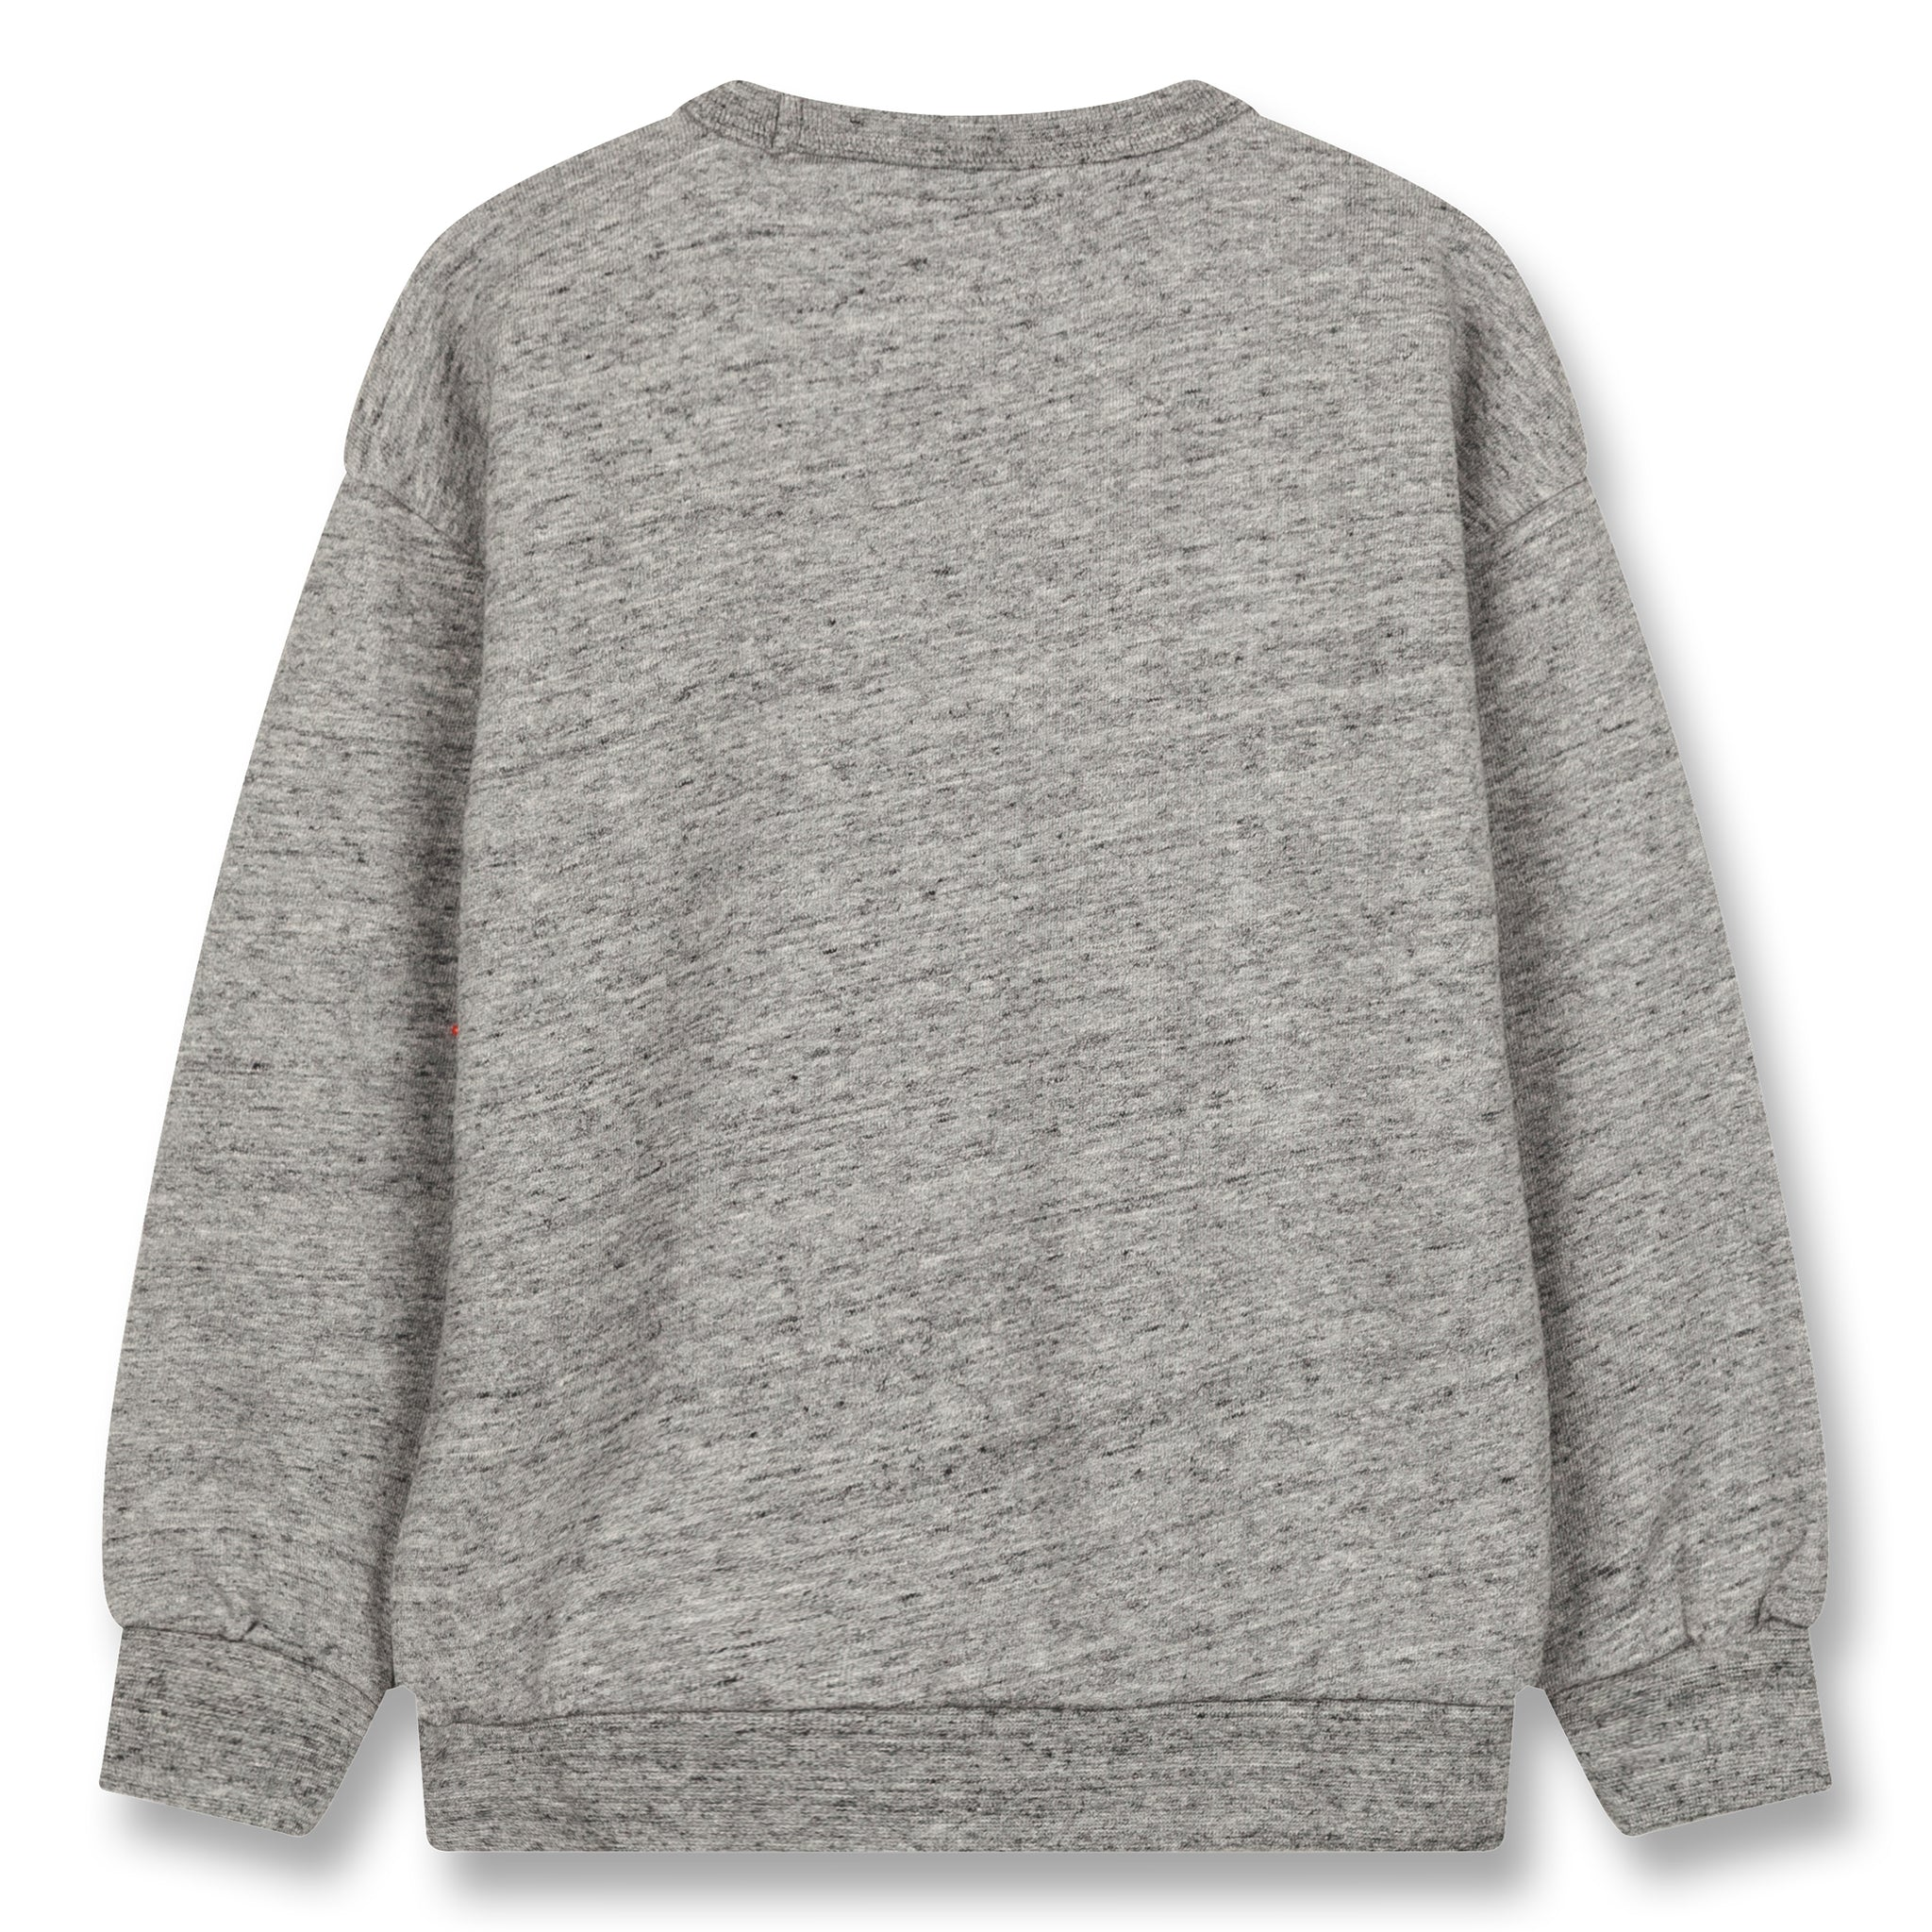 JECKY Heather Grey Colorblock - Crew Neck Sweatshirt 3